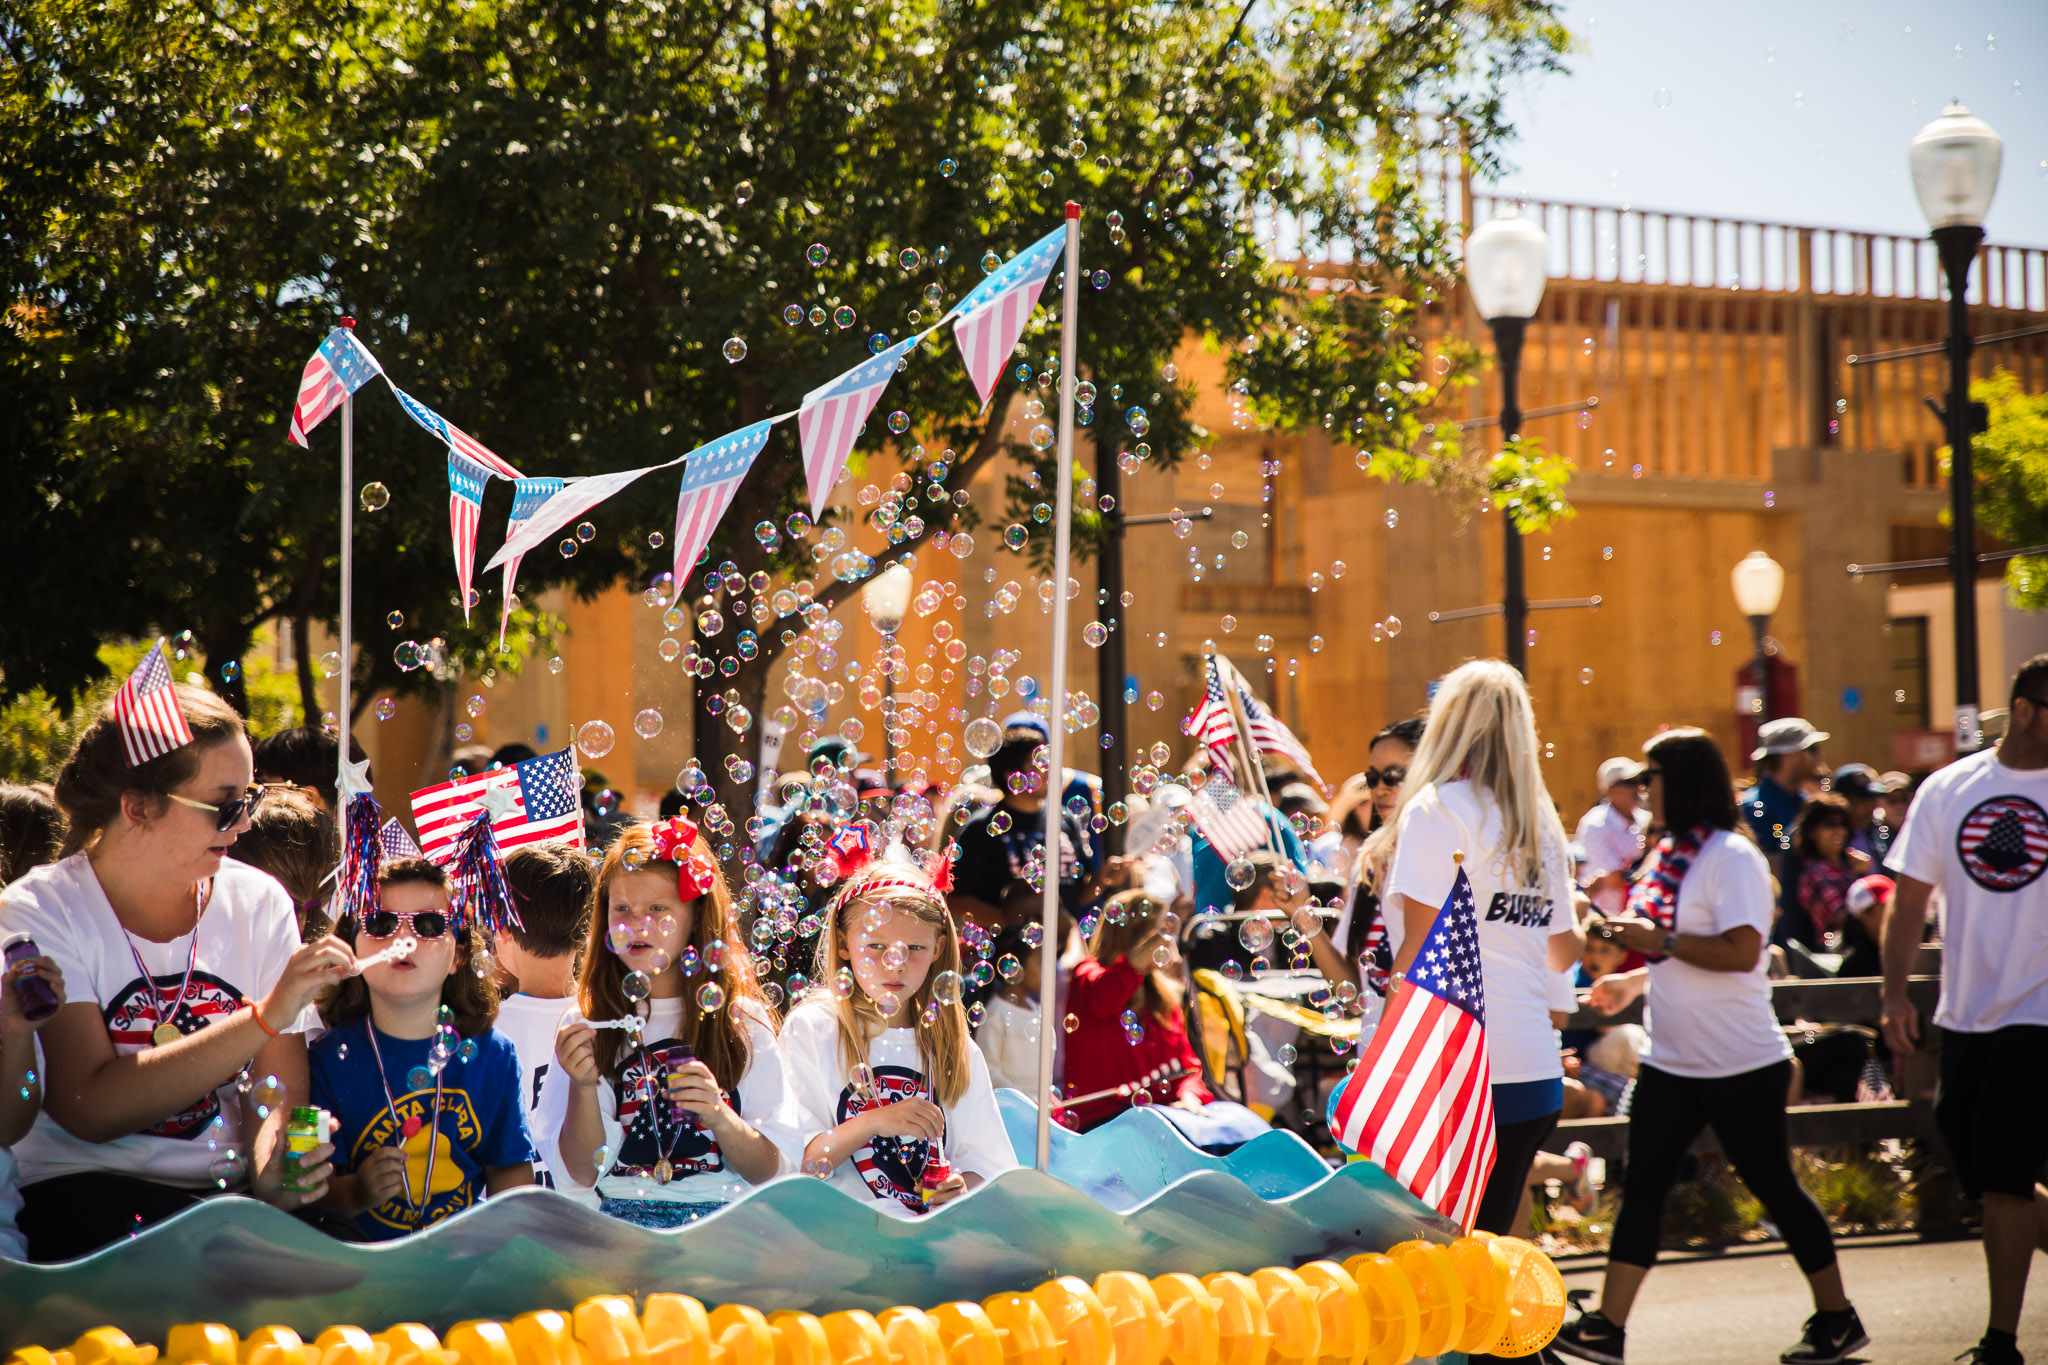 Archer_Inspired_Photography_Morgan_Hill_California_4th_of_july_parade-83.jpg